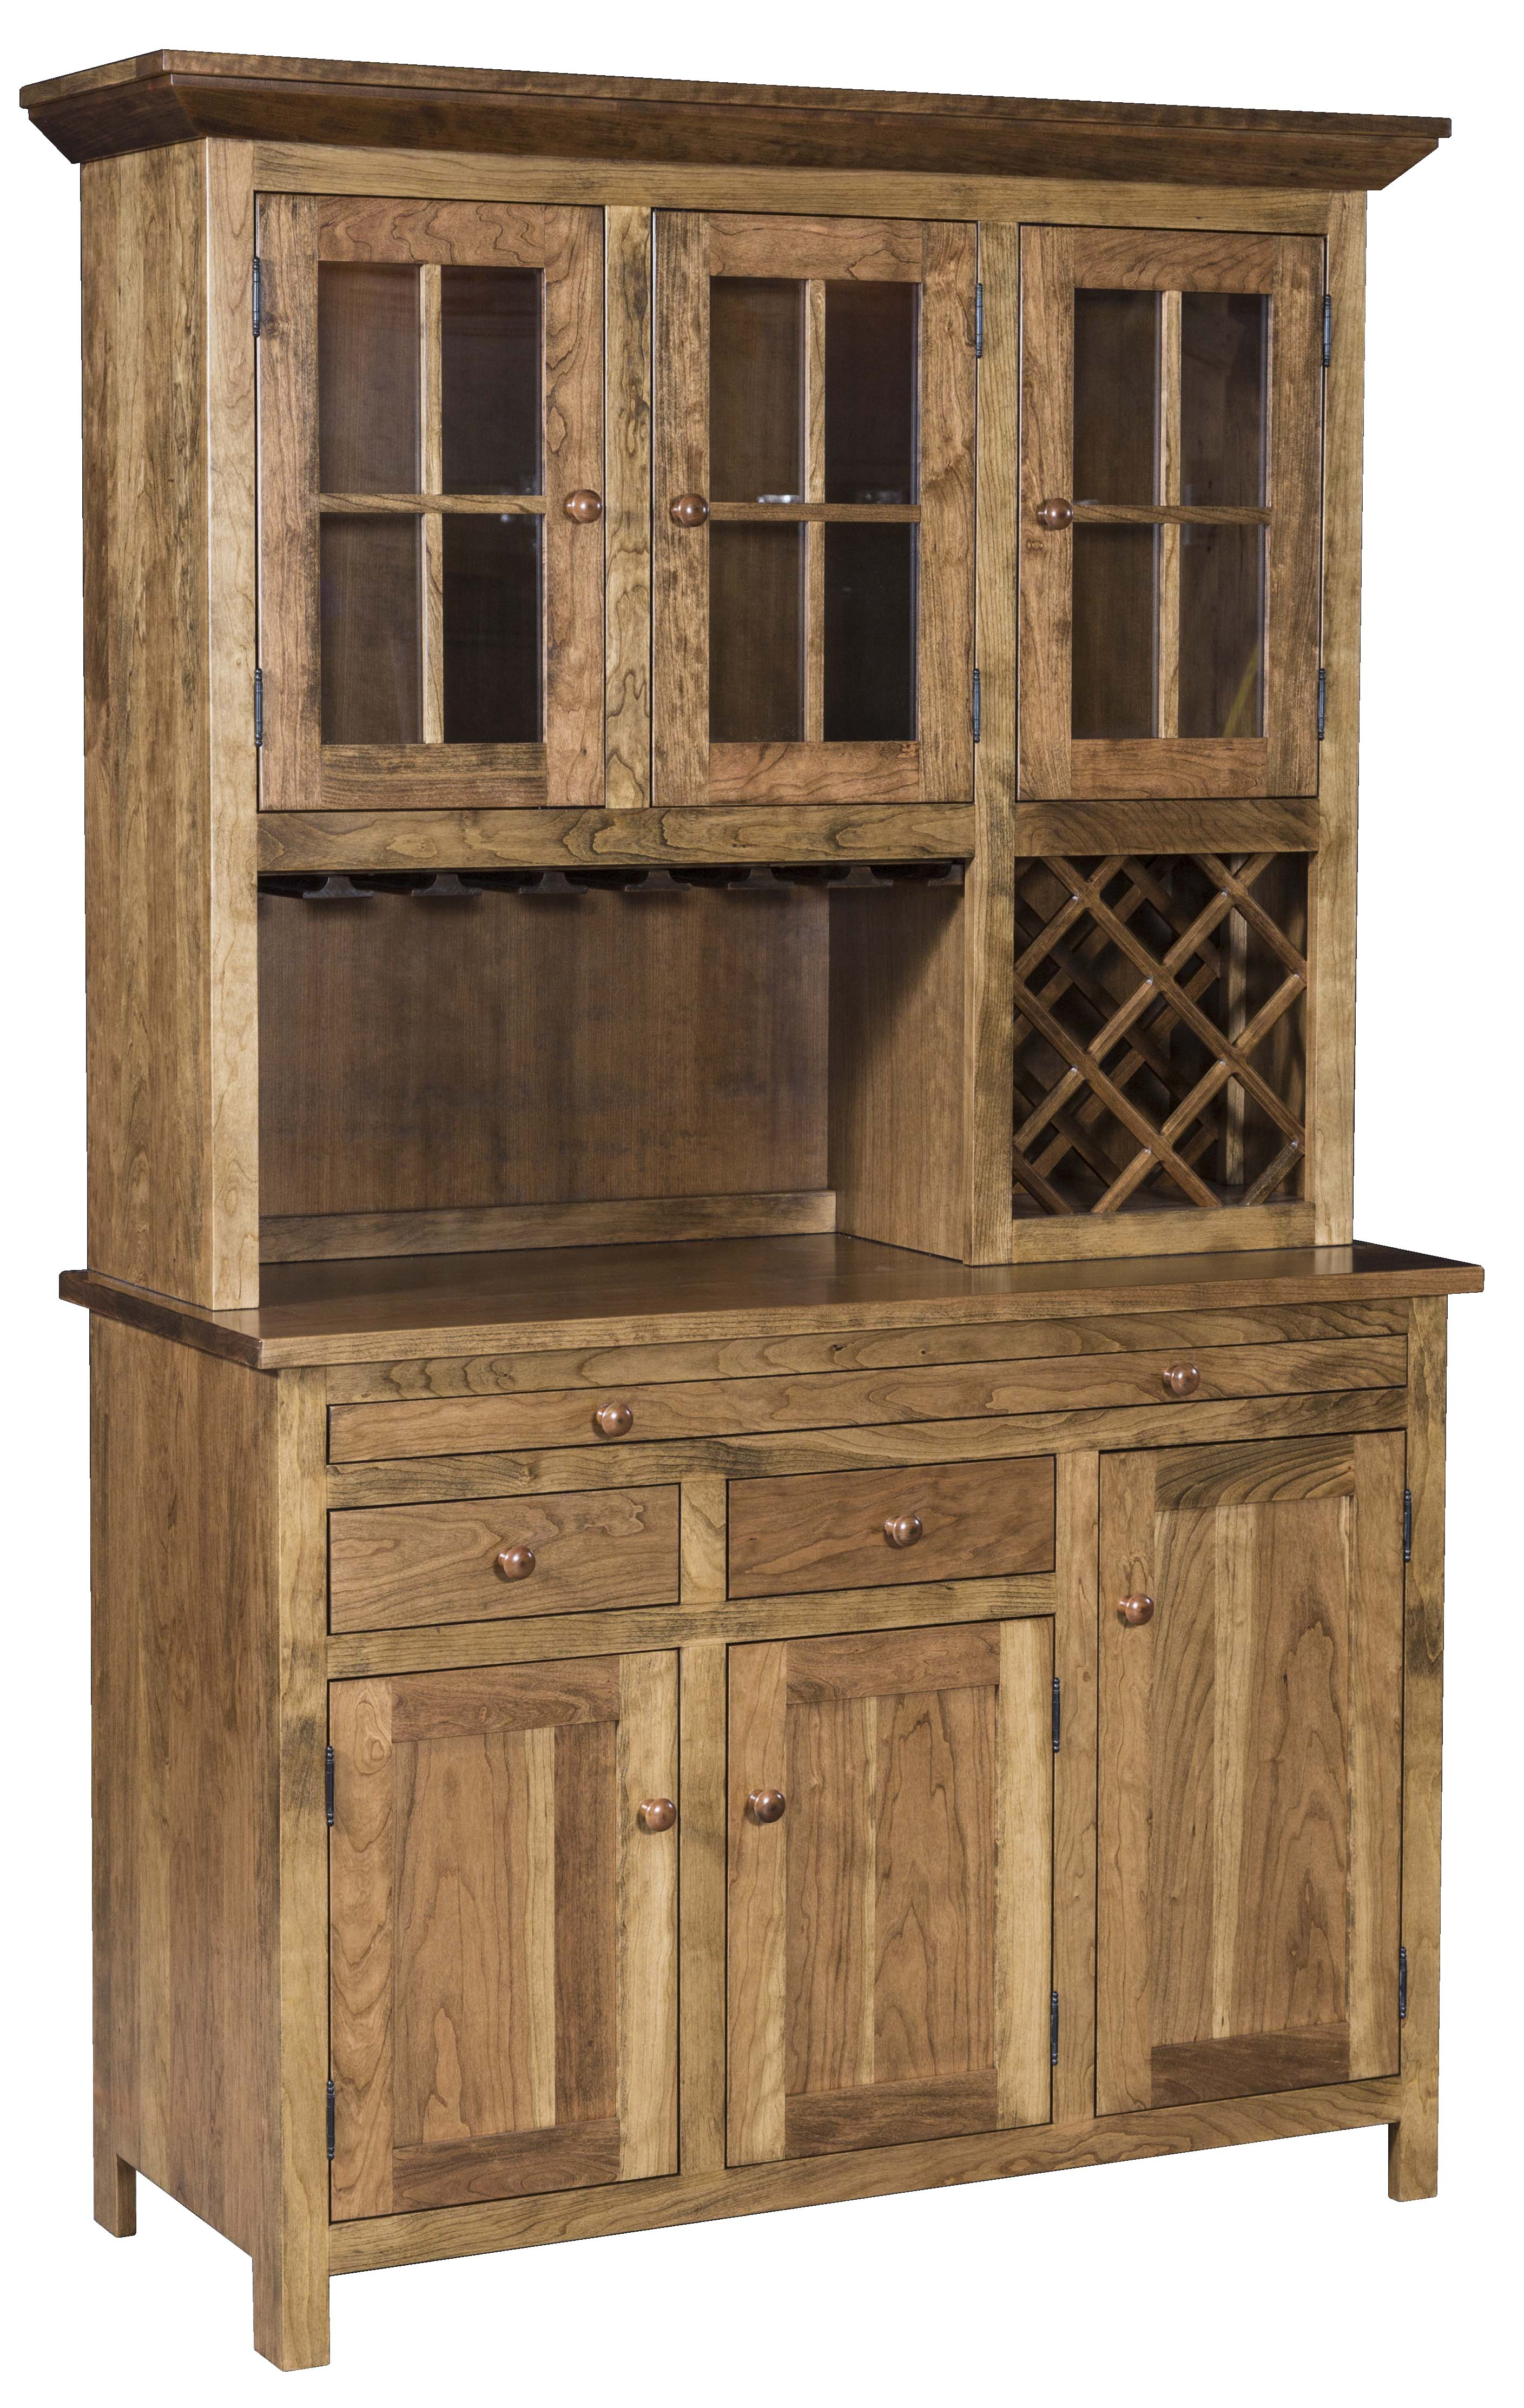 Buffet Sideboard With Glass Doors Shaker Wine Hutch | Hardwood Creations